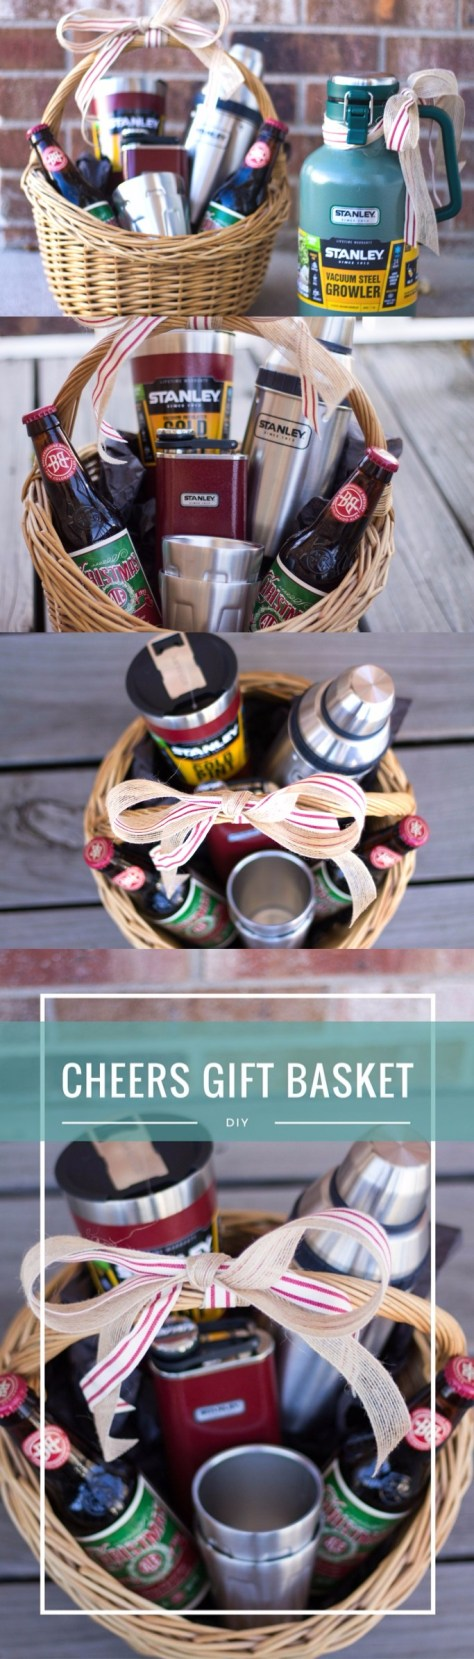 DIY Cheers Gift Basket